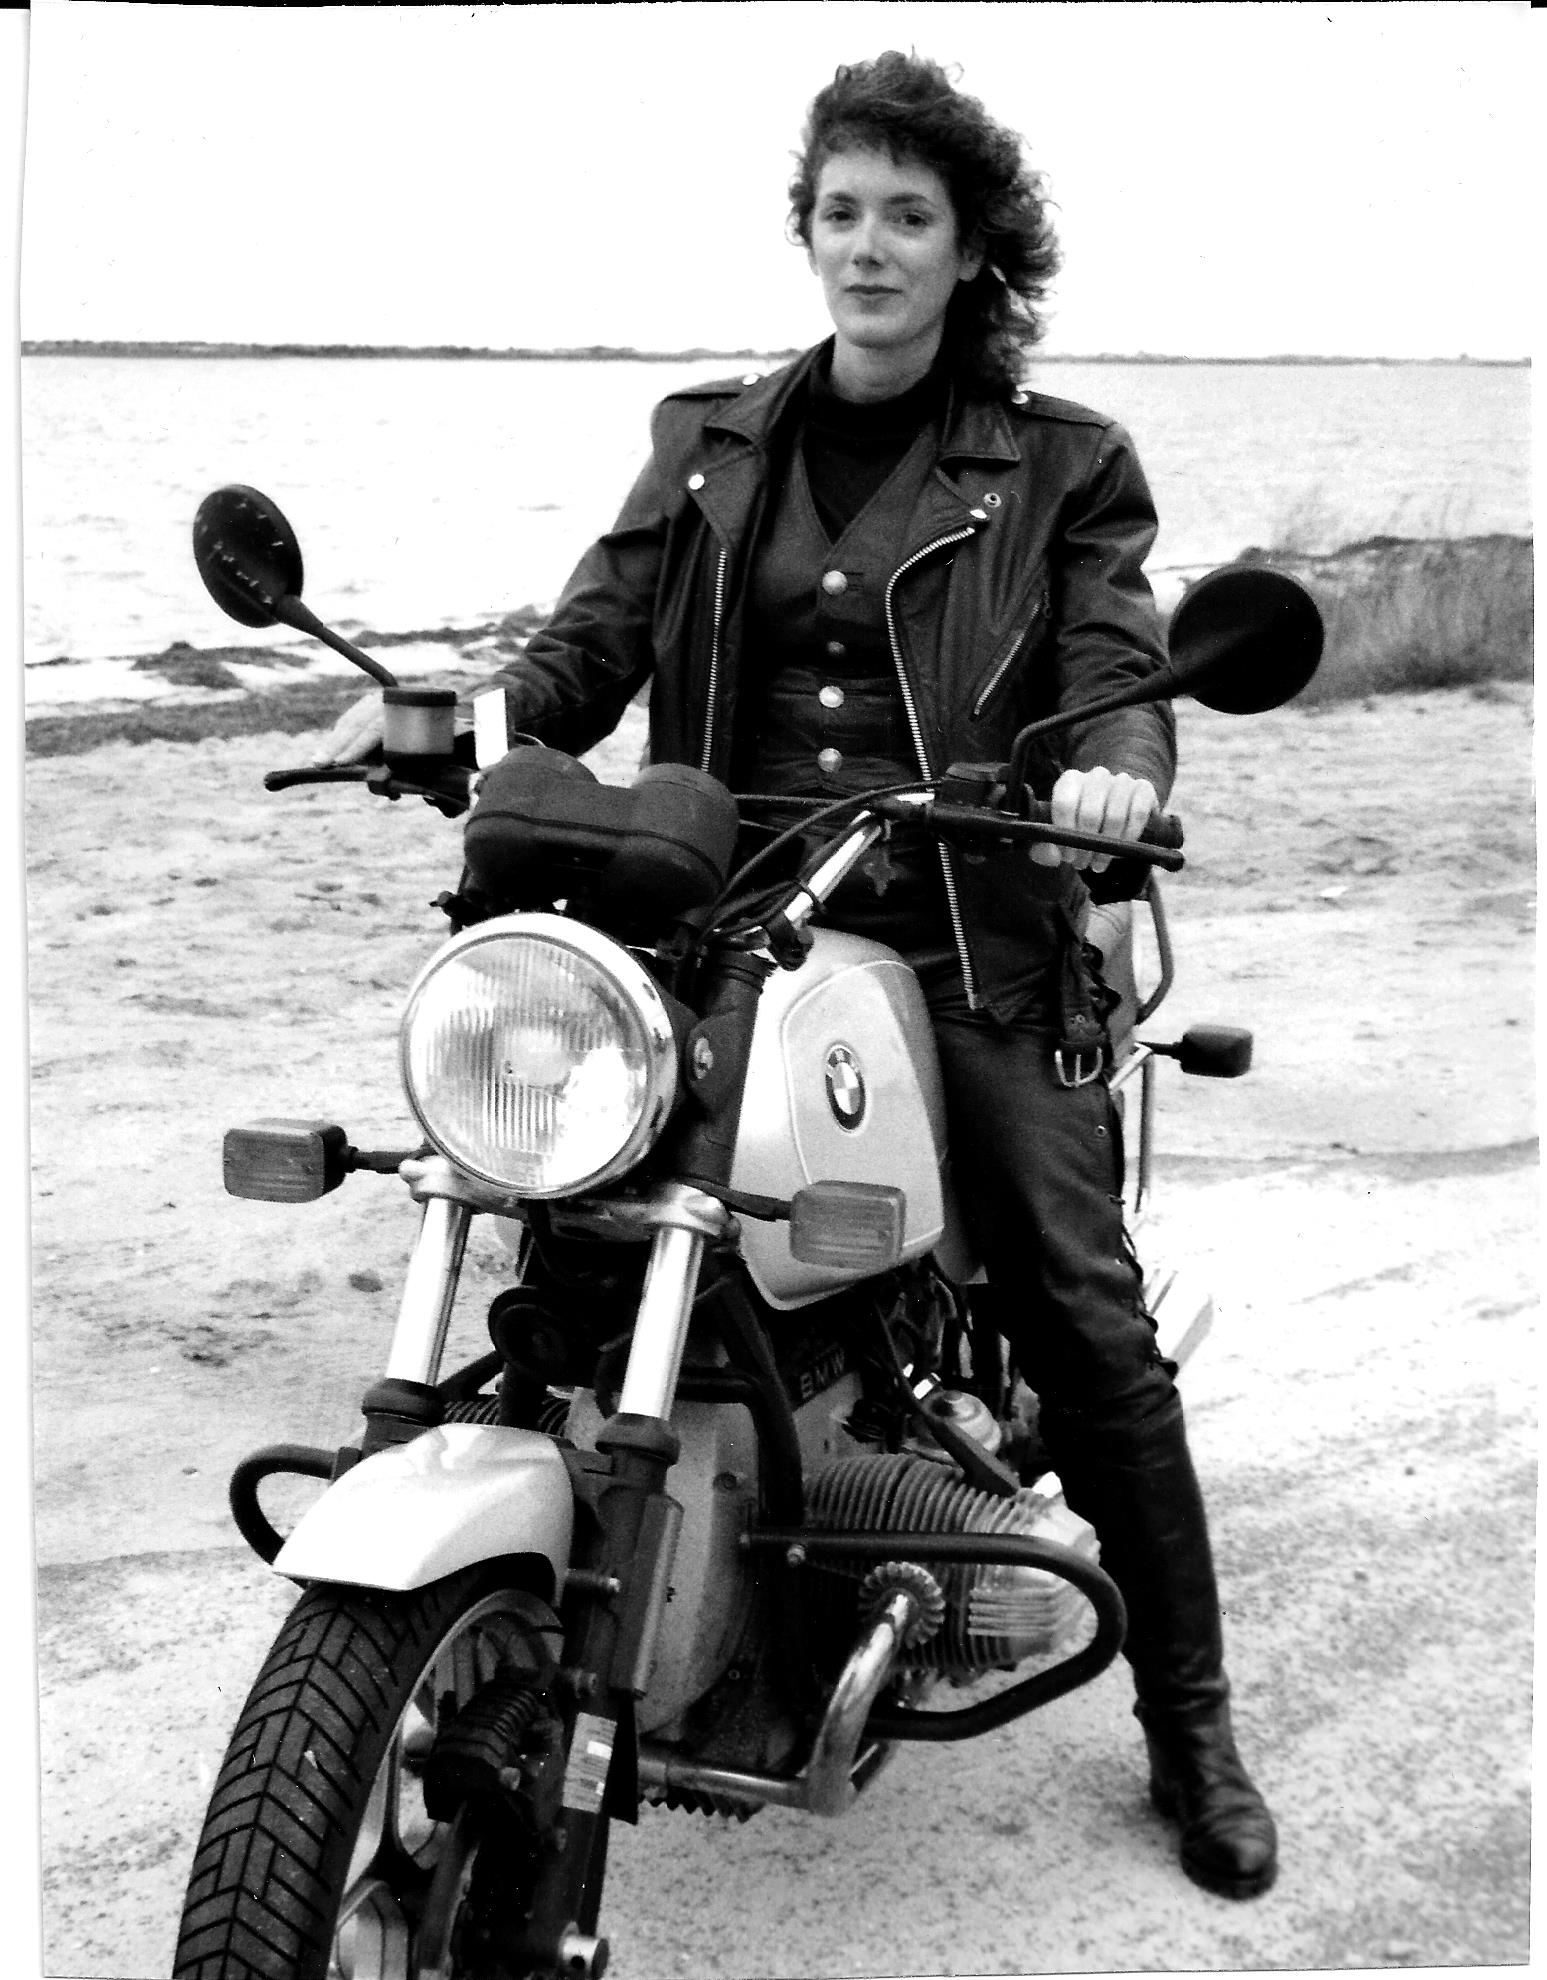 Journalist Ann Ferrar on her vintage BMW-R65 upon the 1996 release of the first edition of <em>Hear Me Roar</em>. Ann is writing a <em>25th Anniversary Global Edition</em> of <em>Hear Me Roar</em> and a long-form biography of Bessie Stringfield called <em>African American Queen of the Road: Bessie Stringfield—A Journey Through Race, Faith, Resilience and the Road.</em>